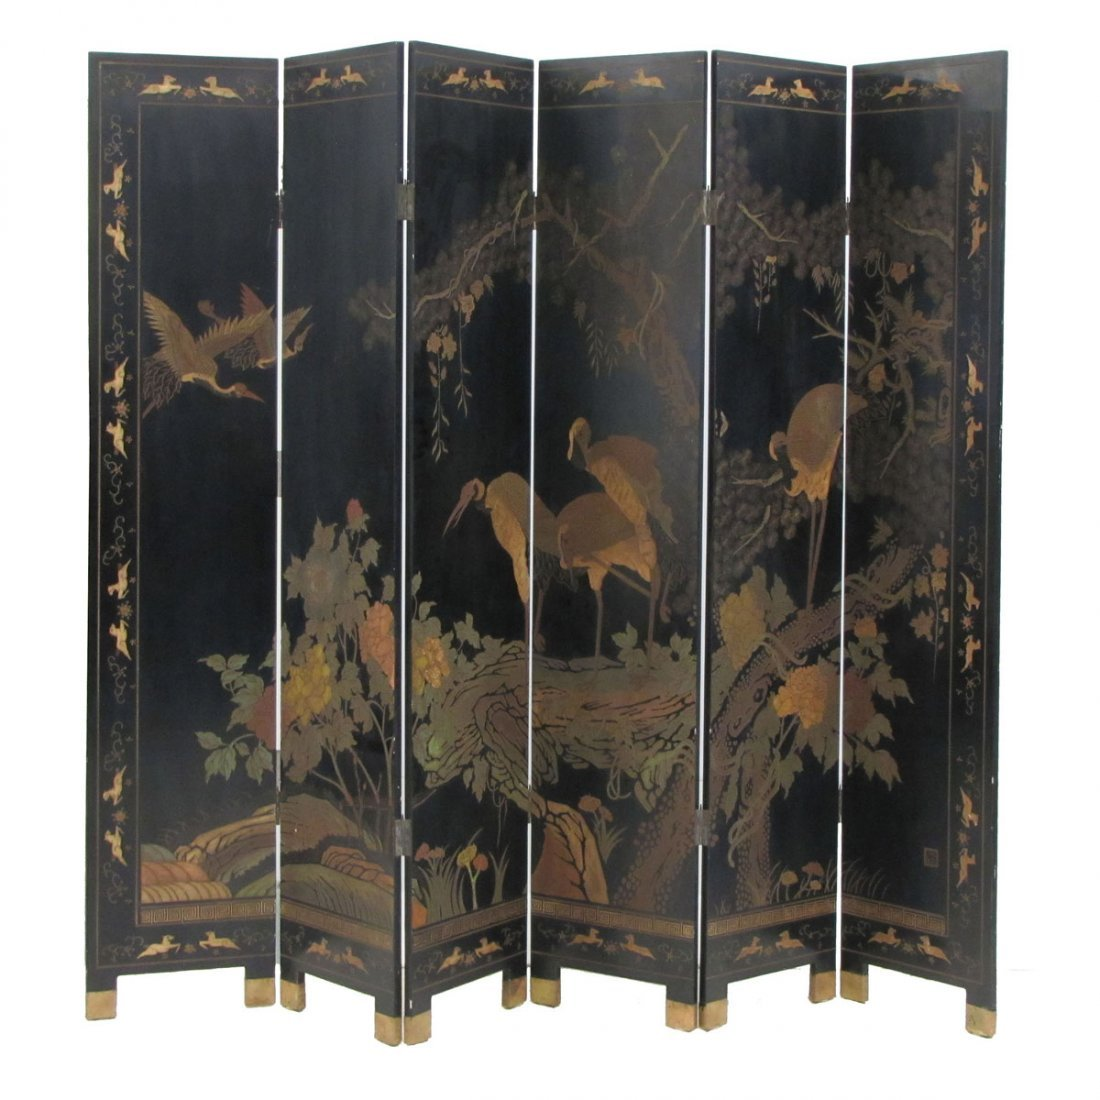 CHINESE CARVED AND PAINTED 6-PANEL SCREEN